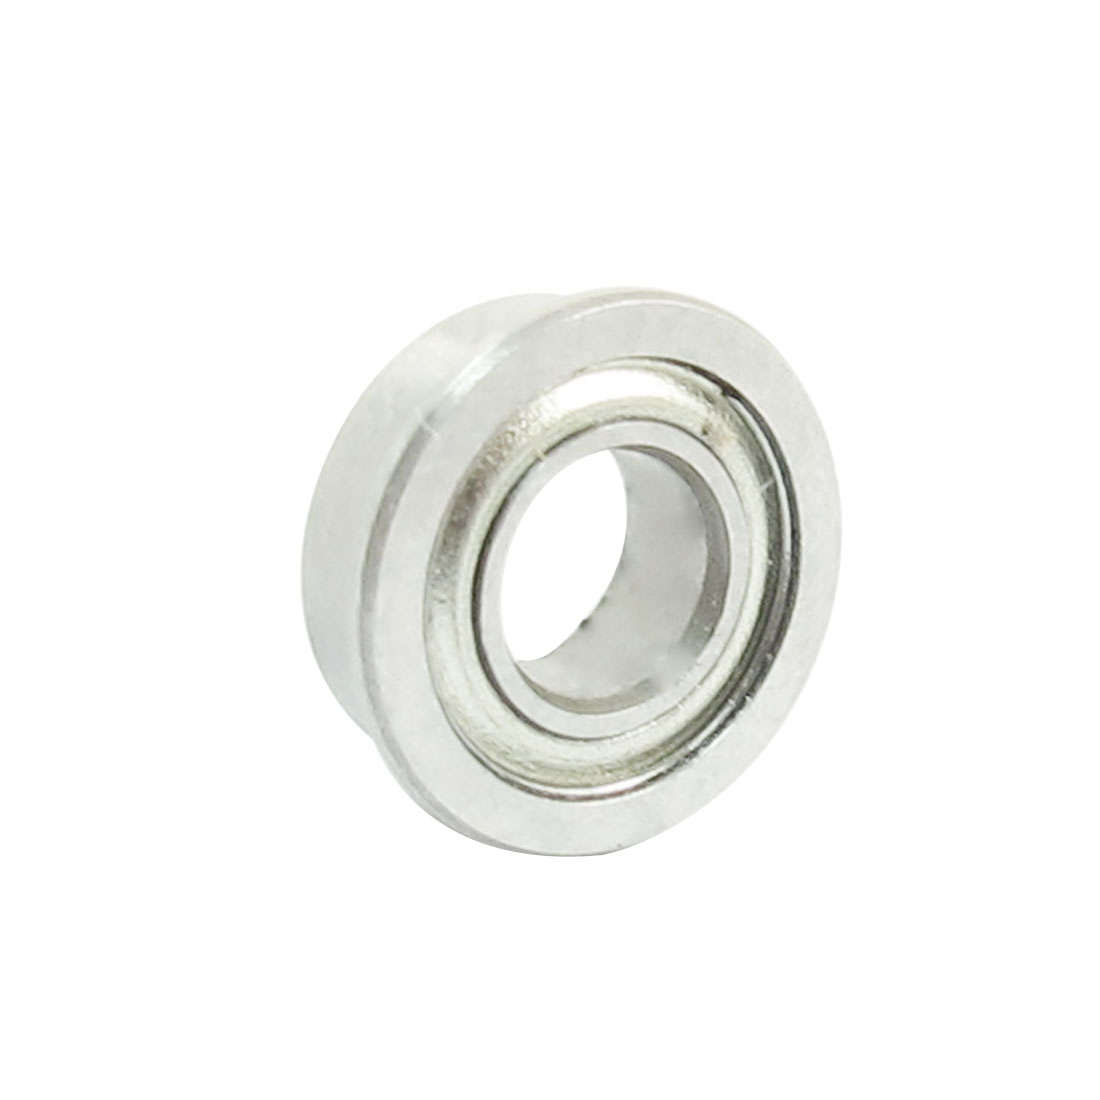 RC Toys Single Row Shielded Flange Ball Bearings 4mm x 8mm x 3mm